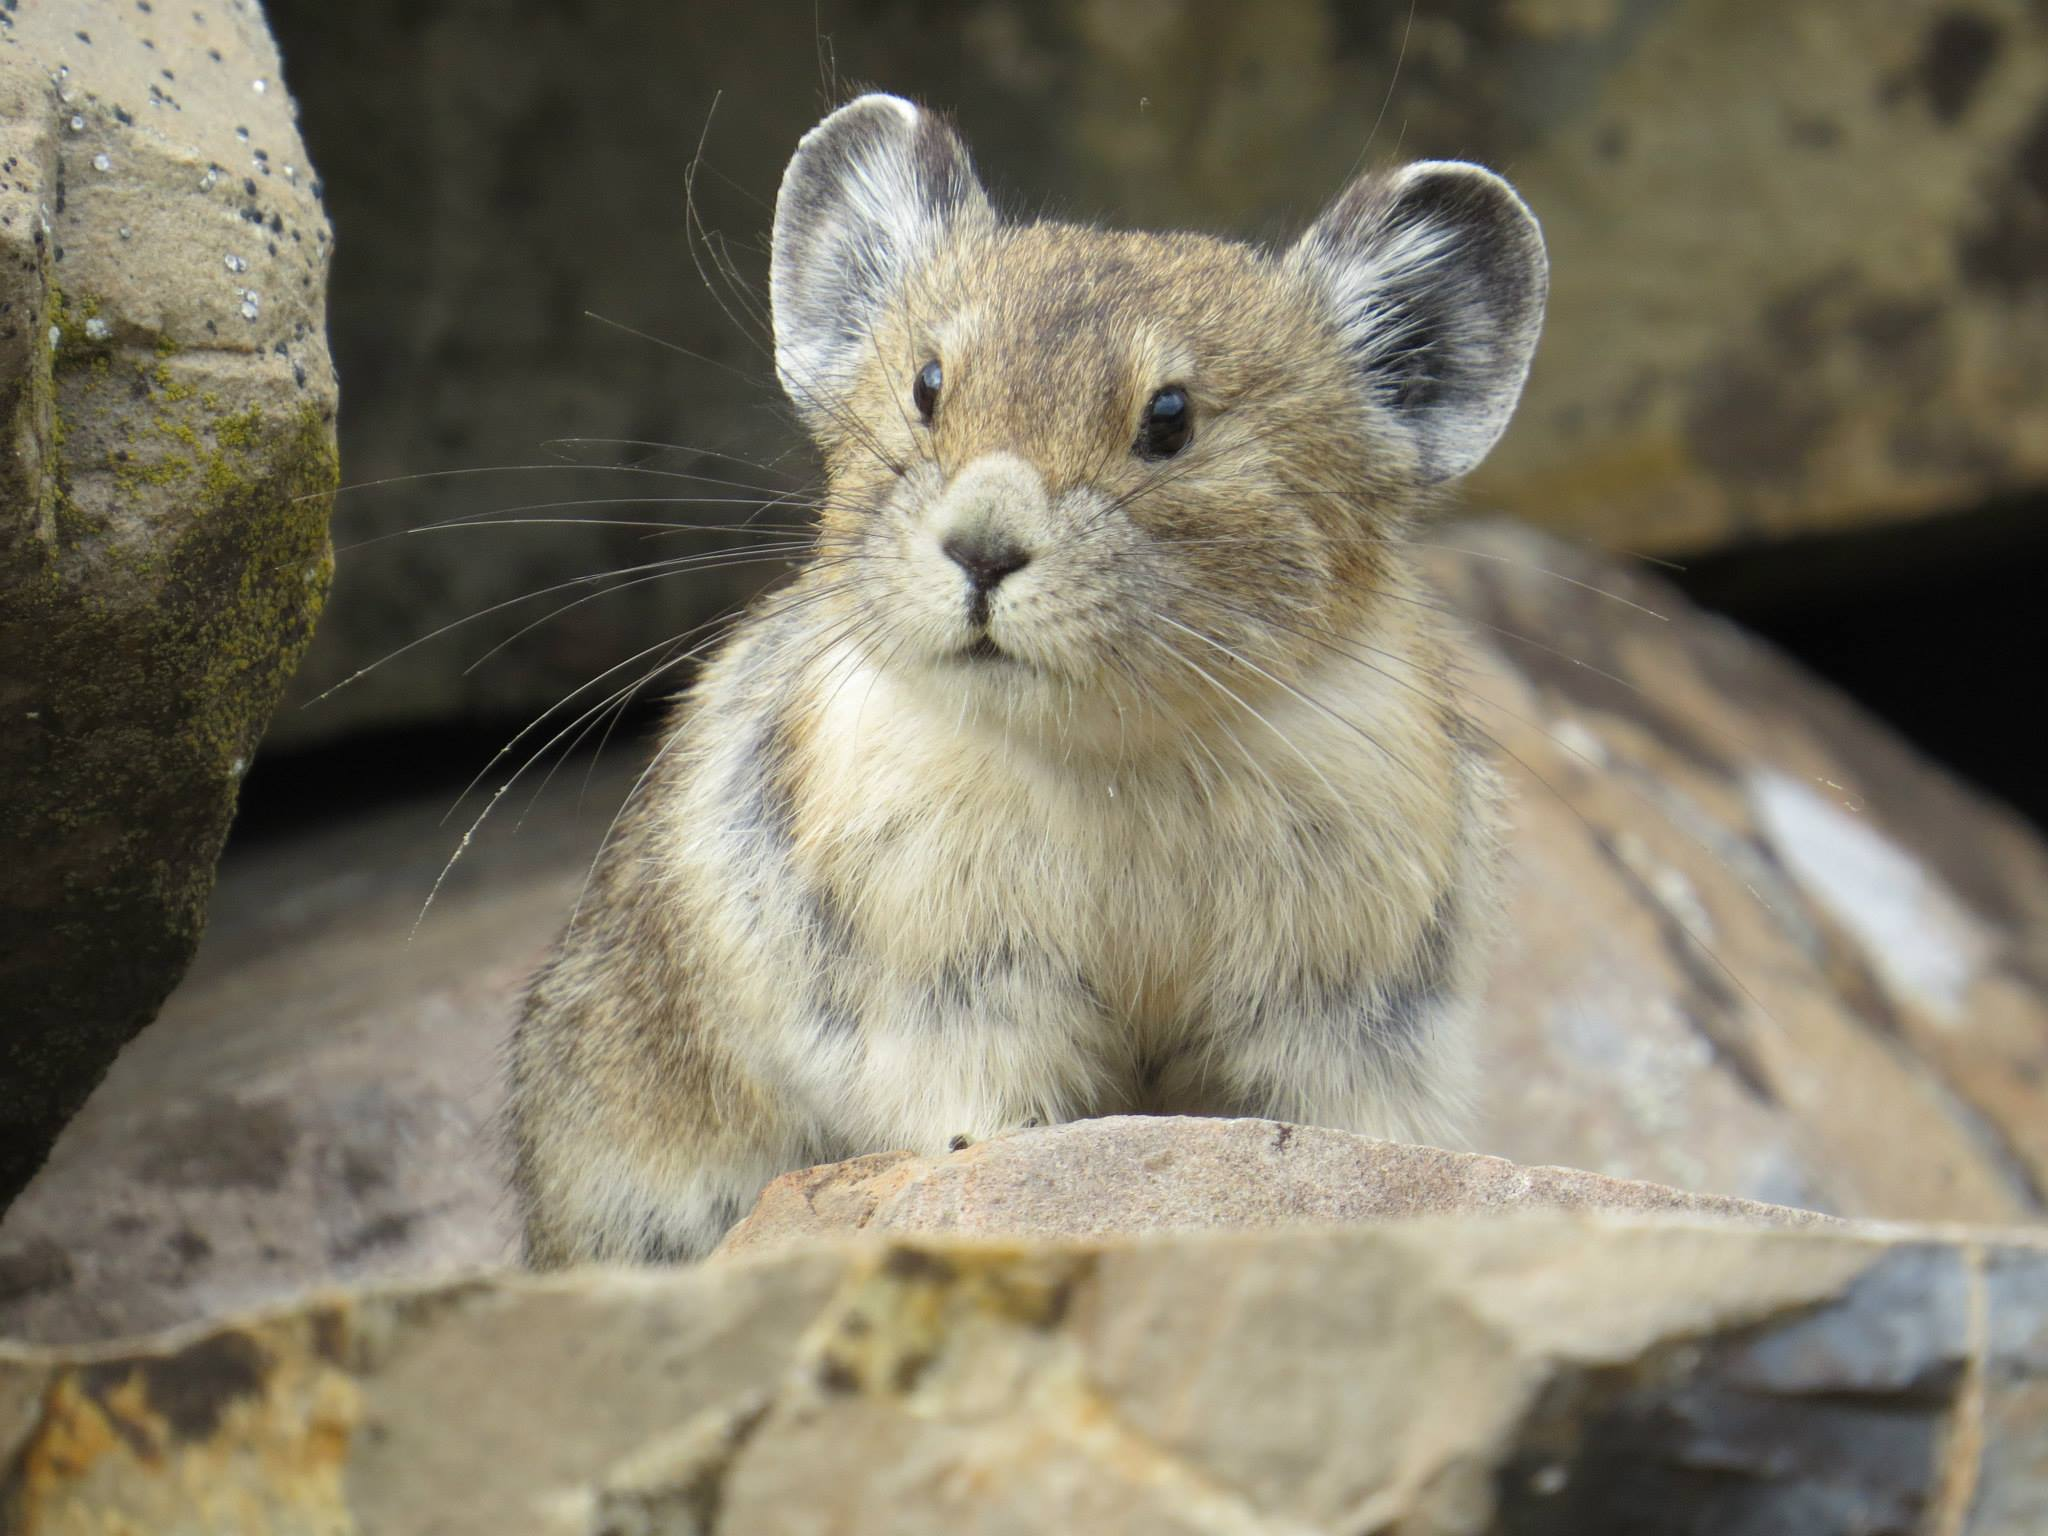 Photo: Pika Climate Change 1 | American Pika - USGS